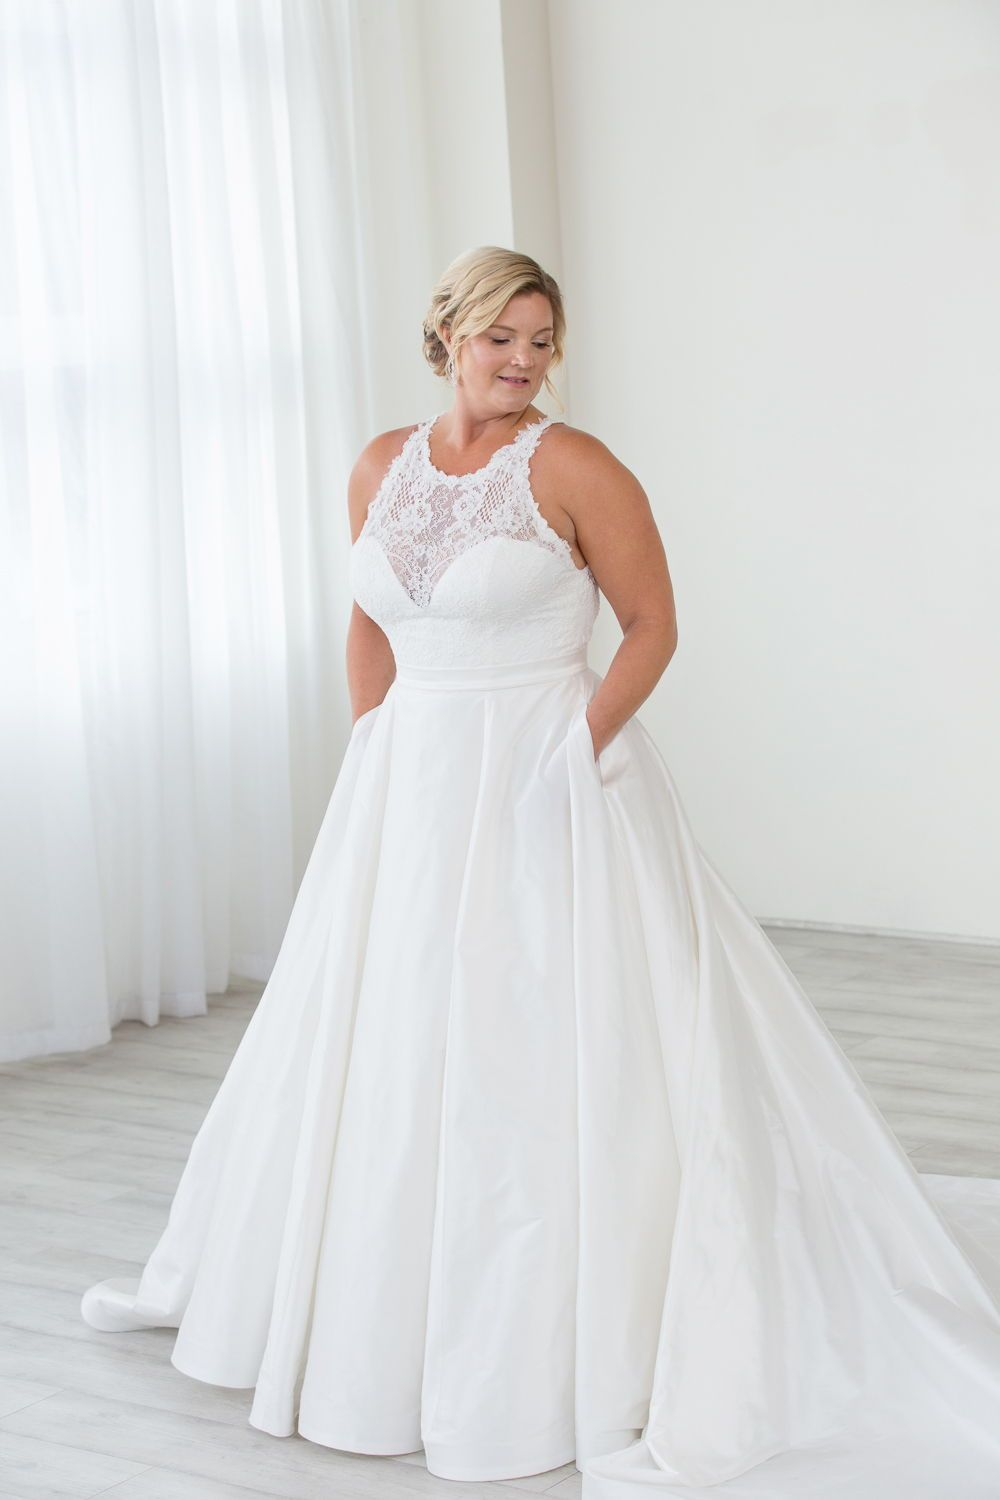 Plus size wedding dresses - Portland, OR Bridal boutique. Wedding ...